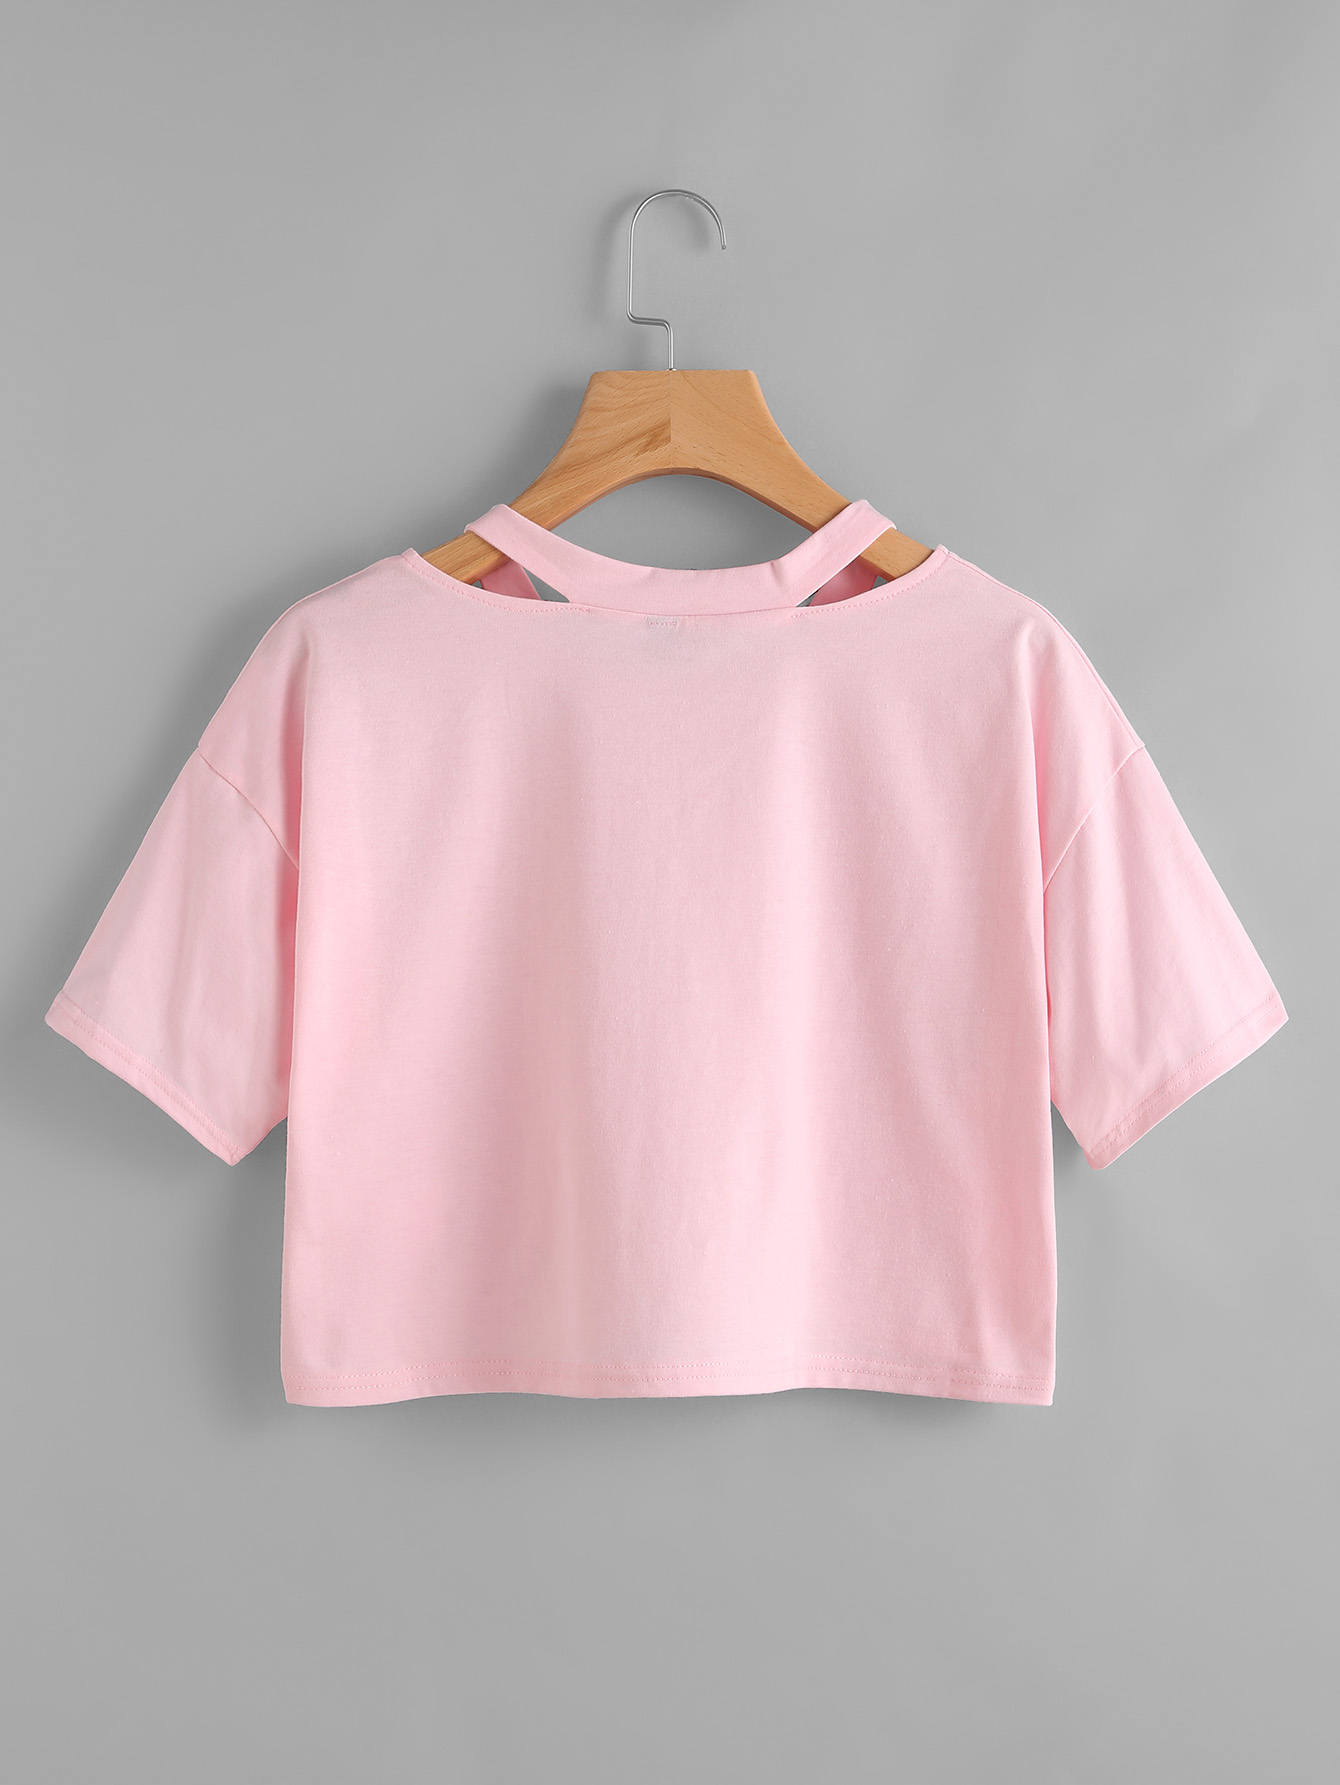 HTB1PAoiQFXXXXc.XpXXq6xXFXXXU - Sexy Hollow Out Short Sleeve Casual  Rose Embroidery T-shirts